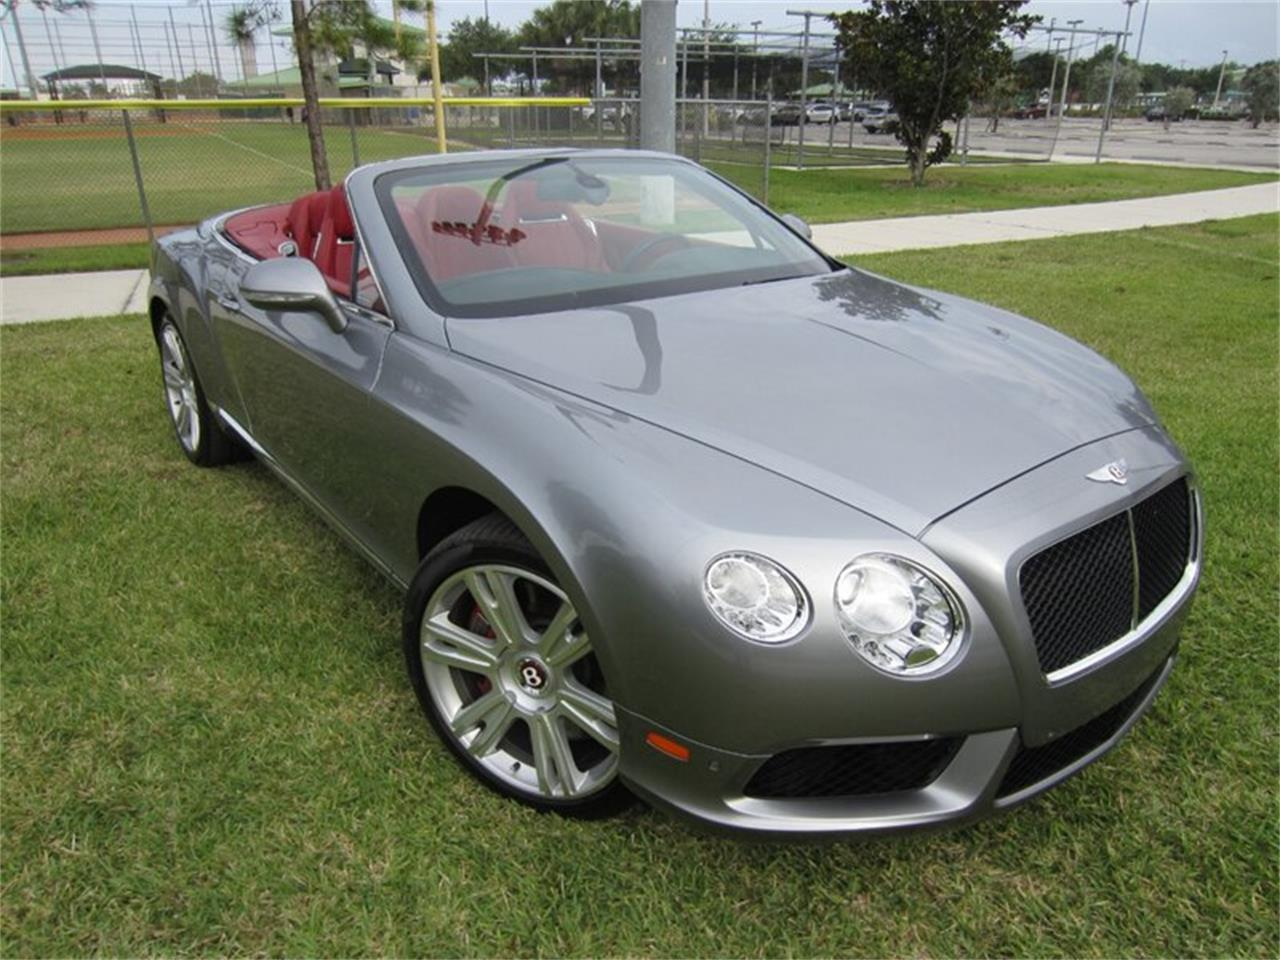 2013 Bentley Continental GTC V8 for sale in Delray Beach, FL – photo 2